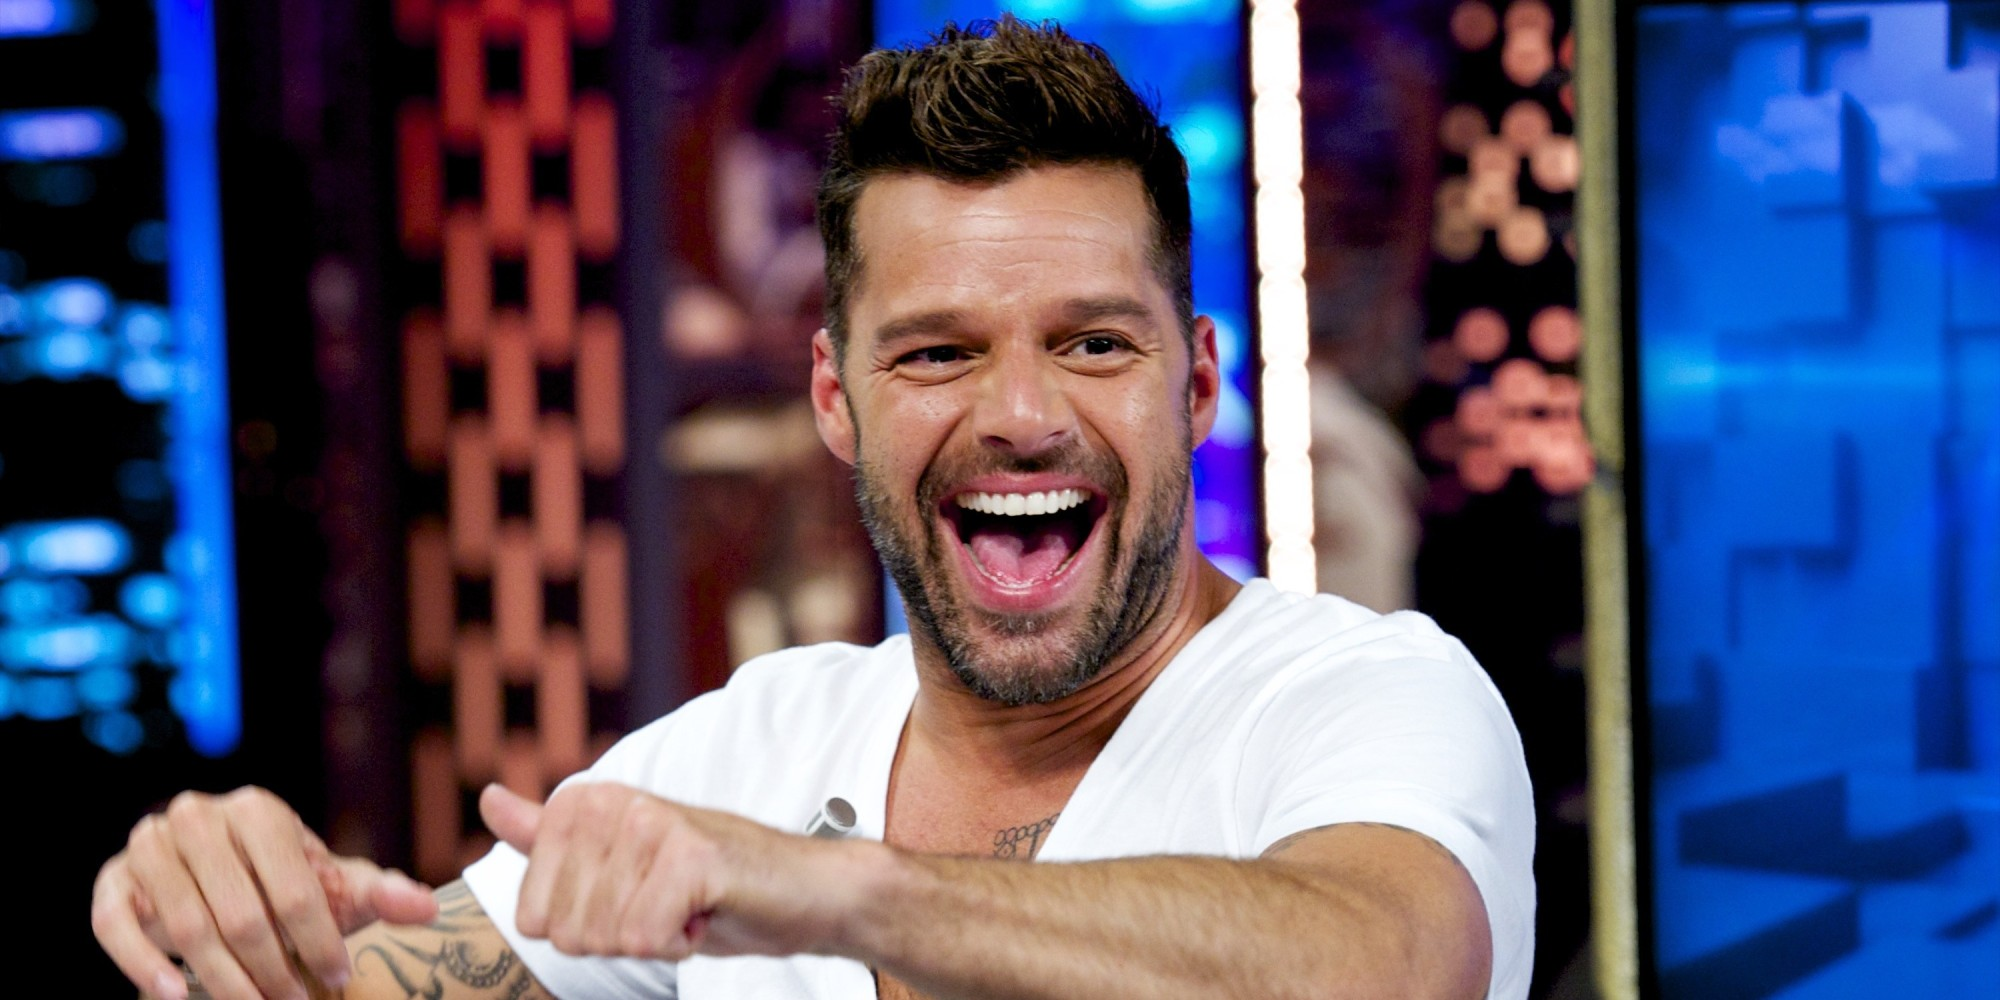 ricky martin википедияricky martin - la mordidita, ricky martin - vente pa' ca, ricky martin - livin' la vida loca, ricky martin - la mordidita скачать, ricky martin 2016, ricky martin mp3, ricky martin - la mordidita перевод, ricky martin maria, ricky martin adios, ricky martin she bangs, ricky martin instagram, ricky martin слушать, ricky martin - la mordidita, ricky martin maluma скачать, ricky martin maria скачать, ricky martin adios перевод, ricky martin she bangs скачать, ricky martin wiki, ricky martin википедия, ricky martin la mordidita boxca